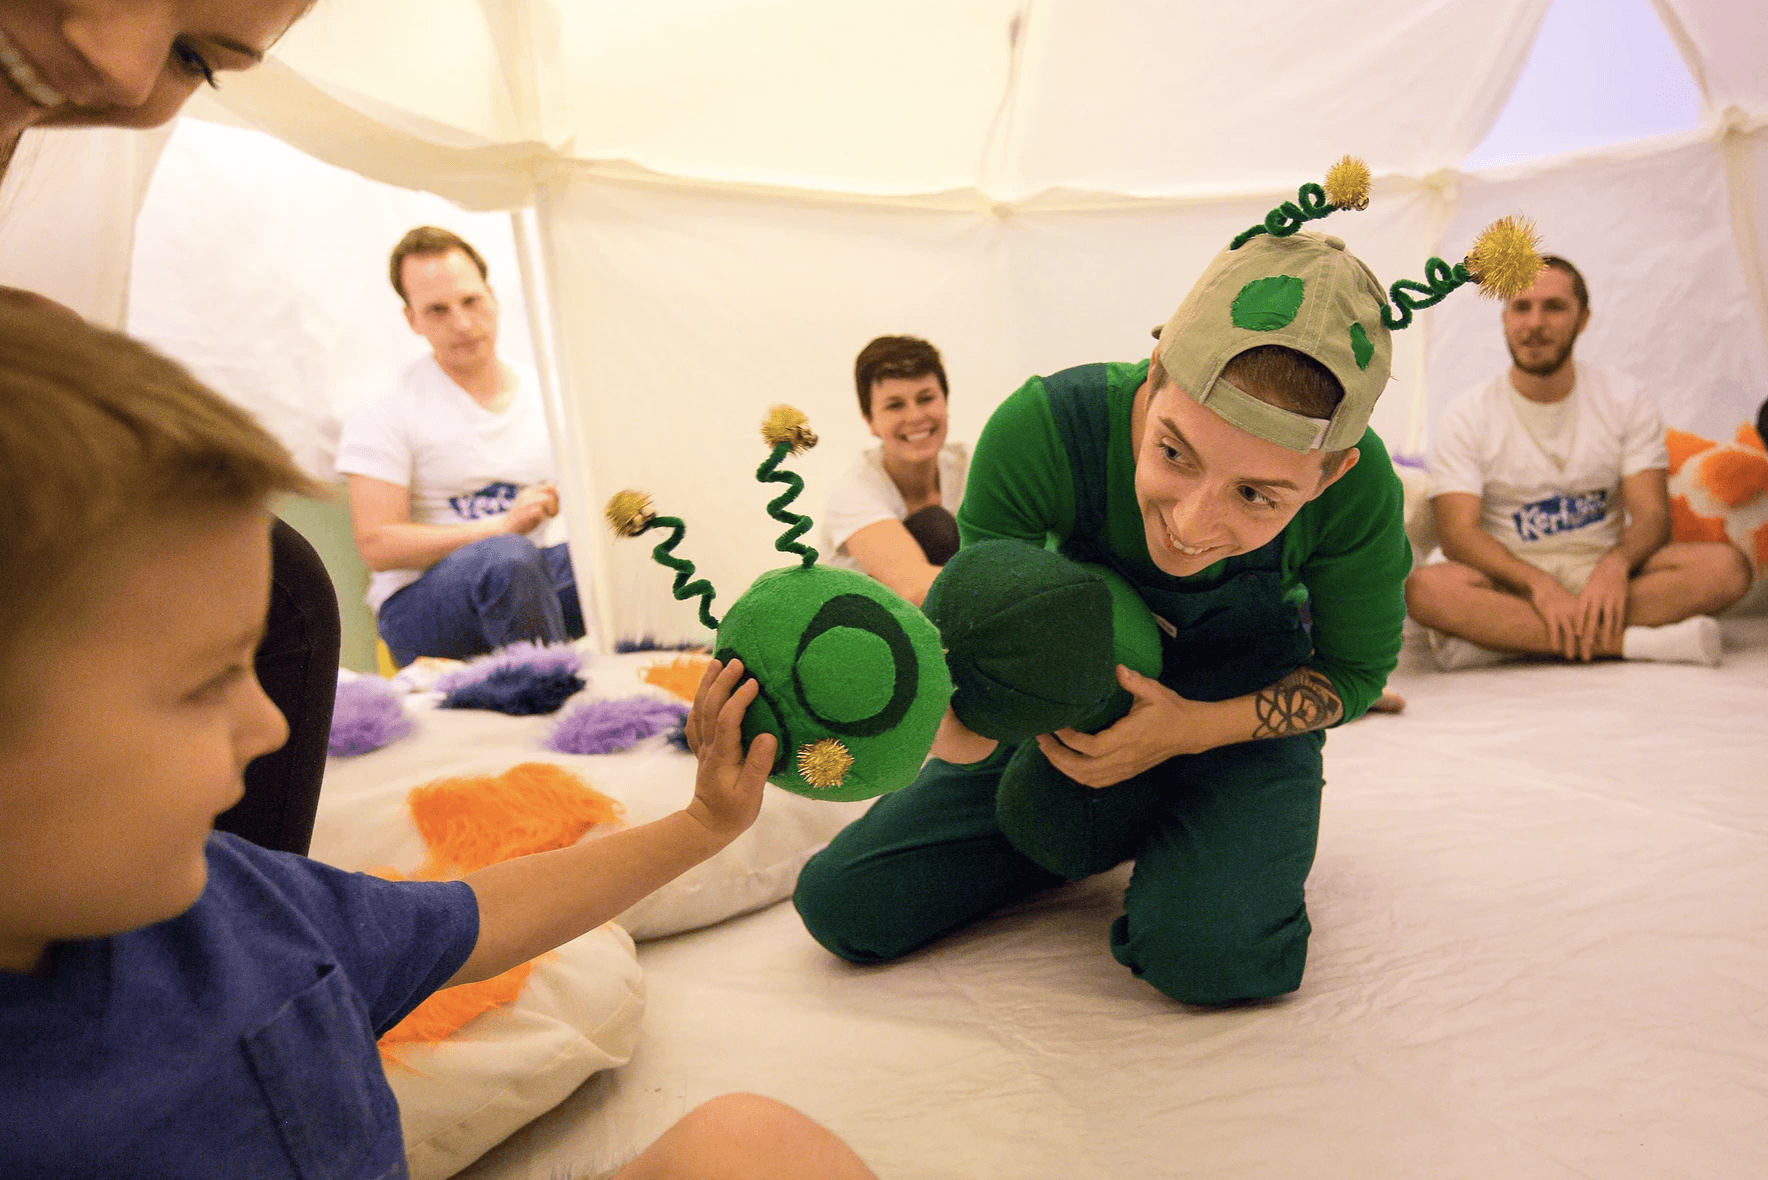 Image of performer in a green costume from A Very Hungry Caterpillar introducing the caterpillar puppet to a young boy.